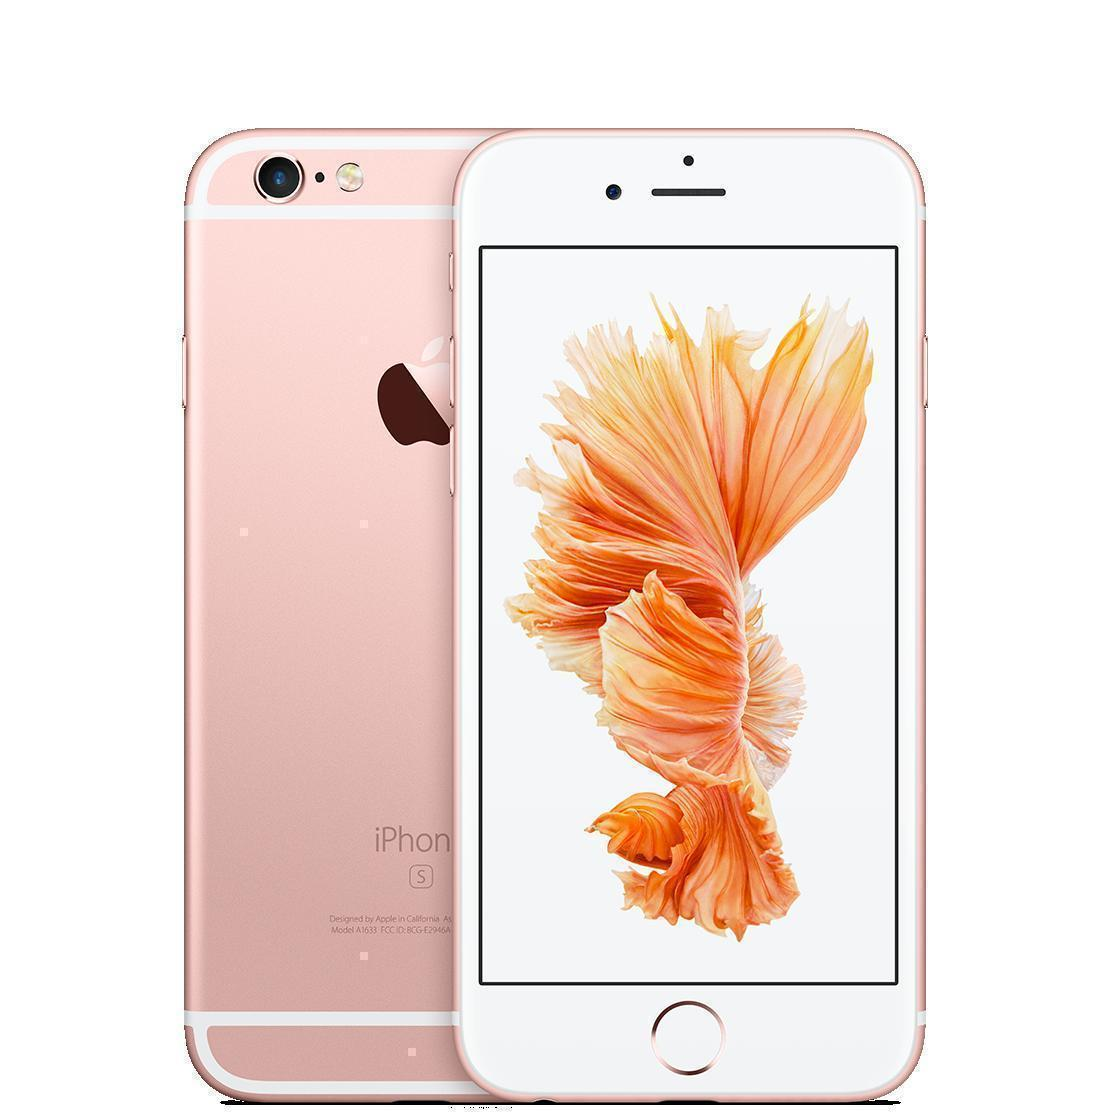 iPhone 6S 64 GB - Rosa - Libre